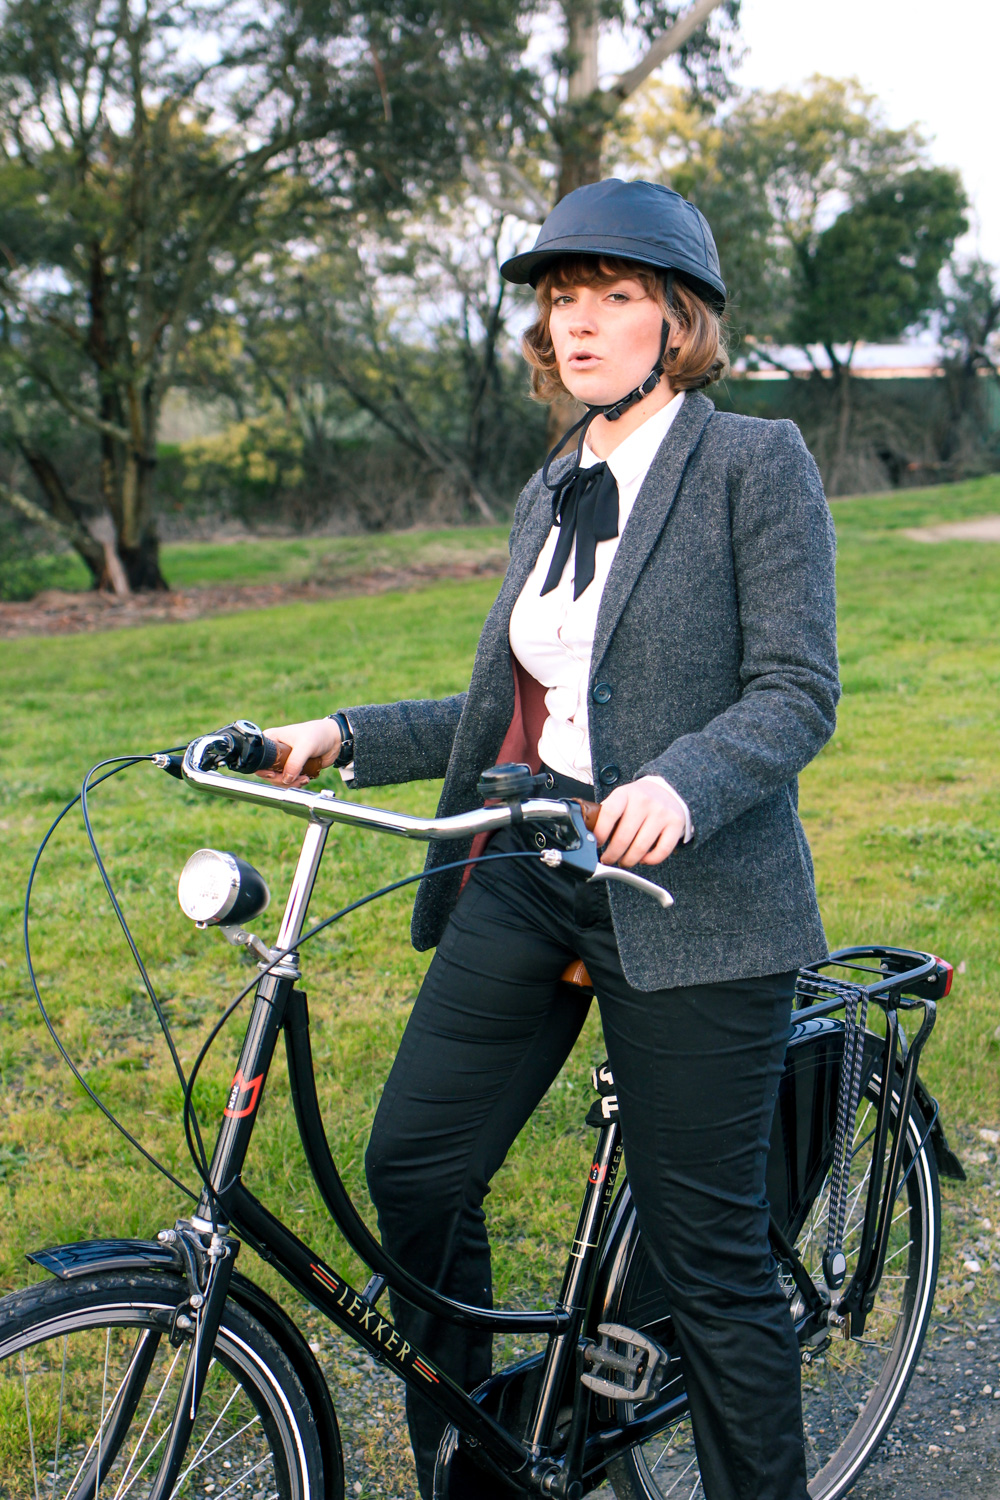 @findingfemme styles women's preppy cycling and bike fashion